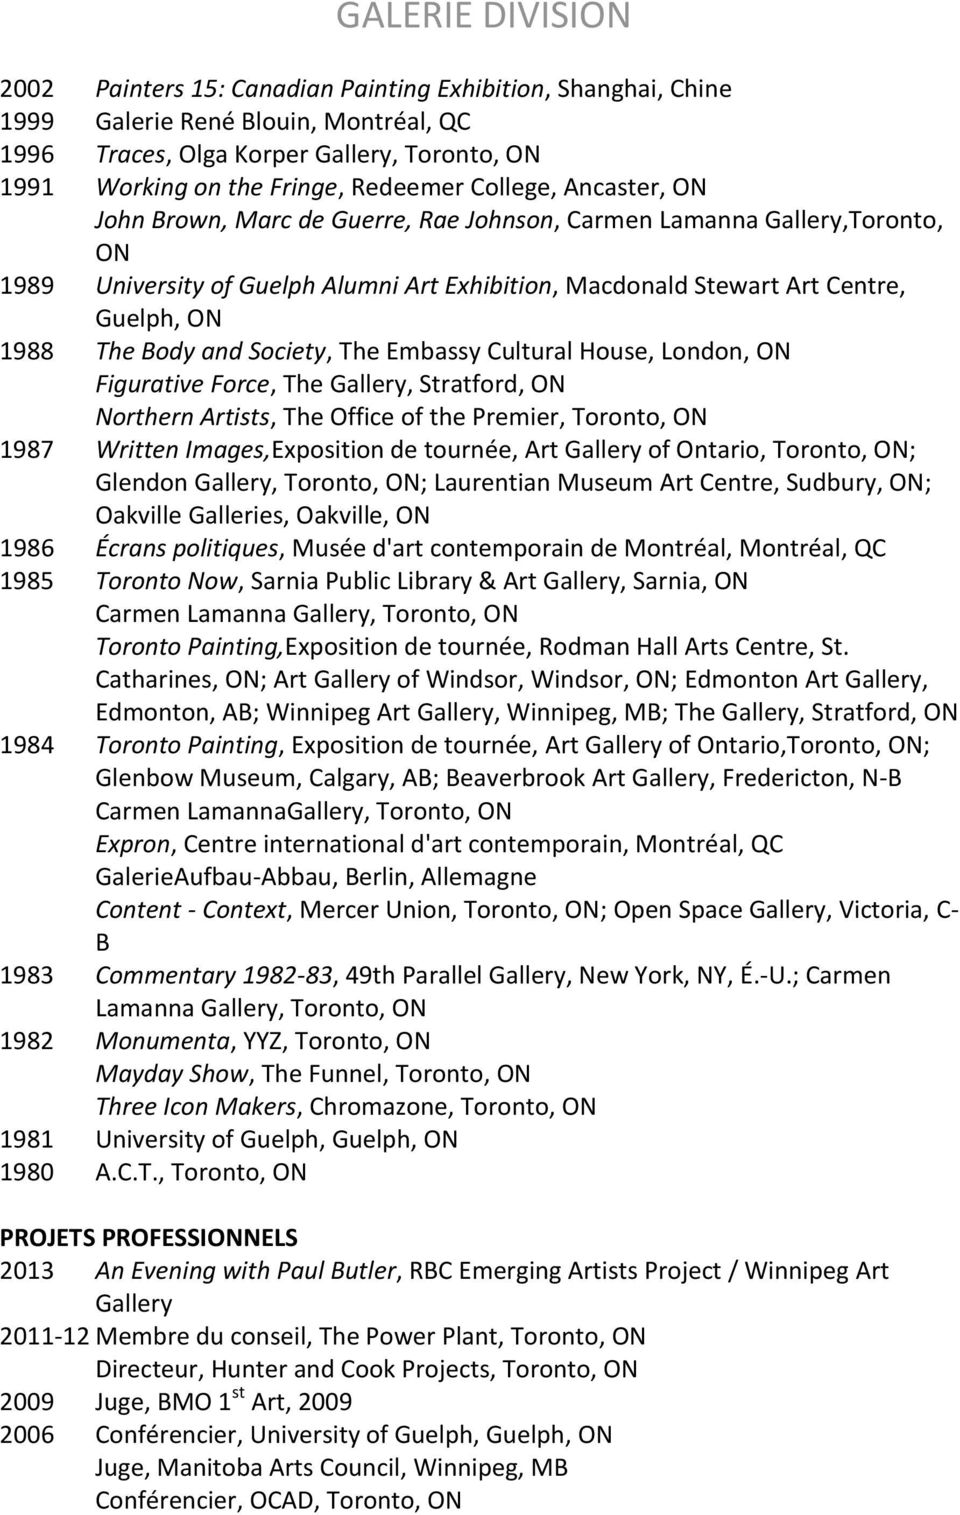 Society, The Embassy Cultural House, London, ON Figurative Force, The Gallery, Stratford, ON Northern Artists, The Office of the Premier, Toronto, ON 1987 Written Images,Exposition de tournée, Art